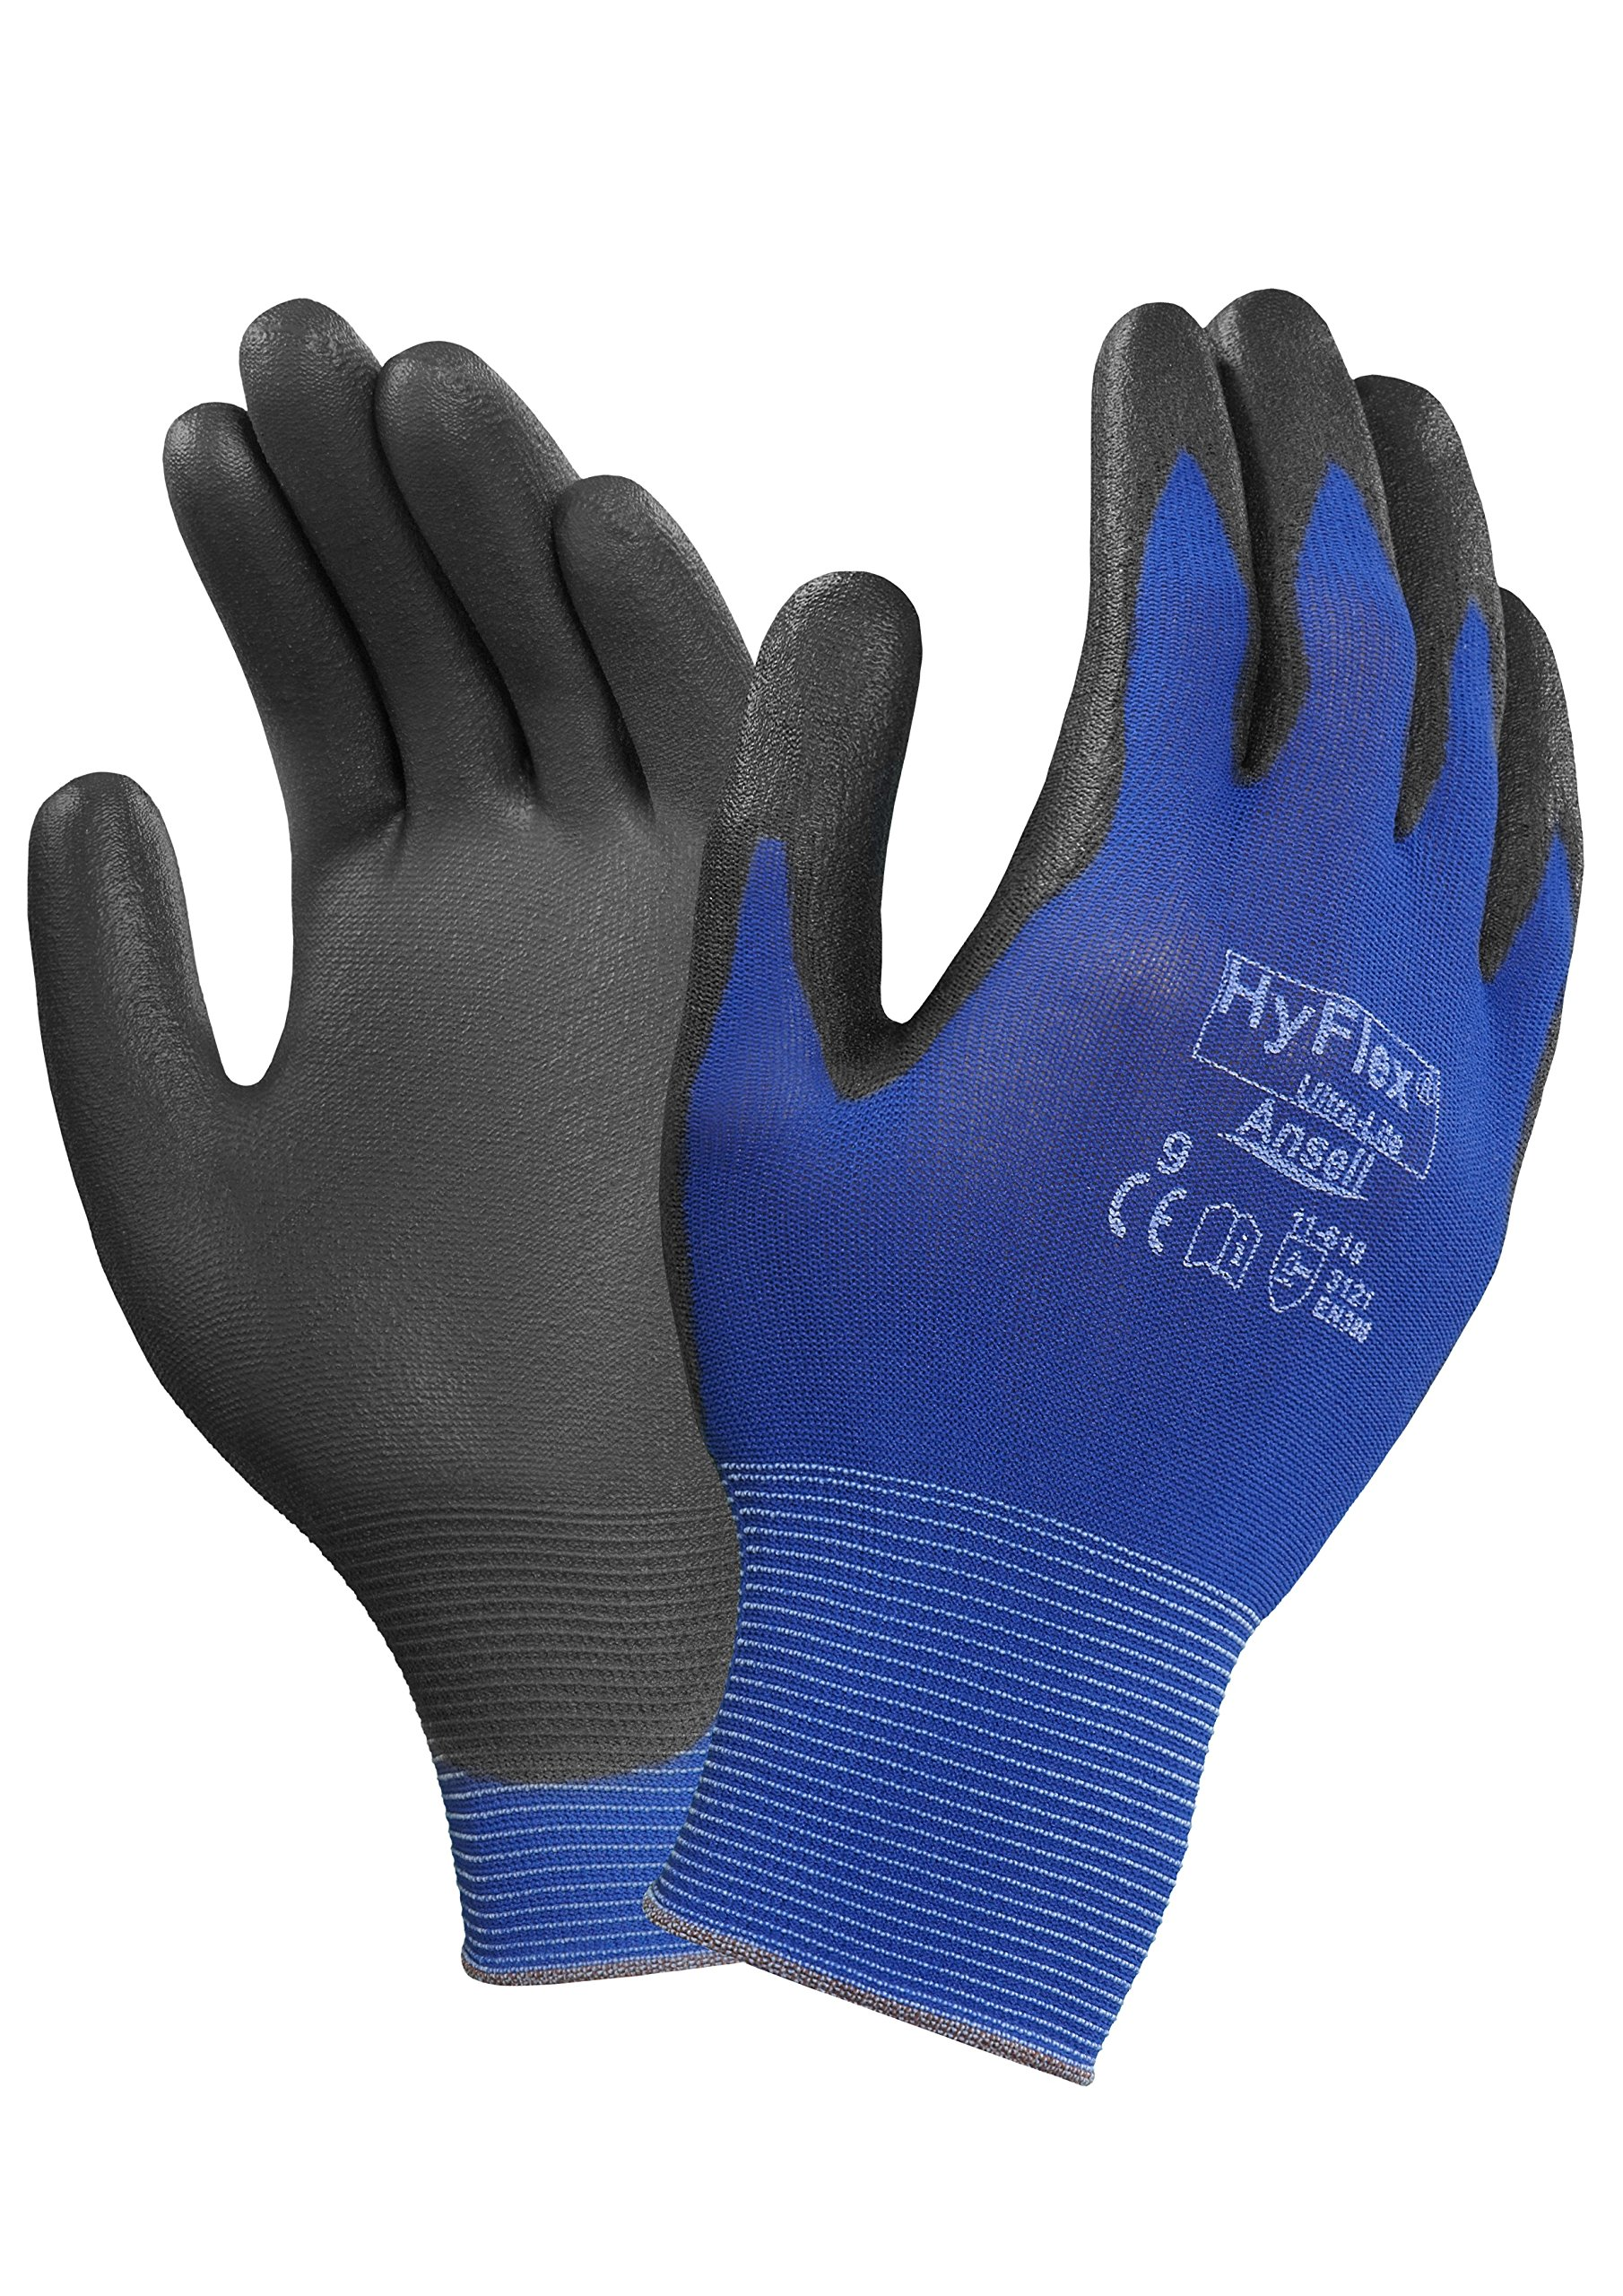 Ansell HyFlex 11-618 Nylon Light Duty Multi-Purpose Glove with Knitwrist, Abrasion/Cut Resistant, Size 9, Blue (Pack of 12 Pair)